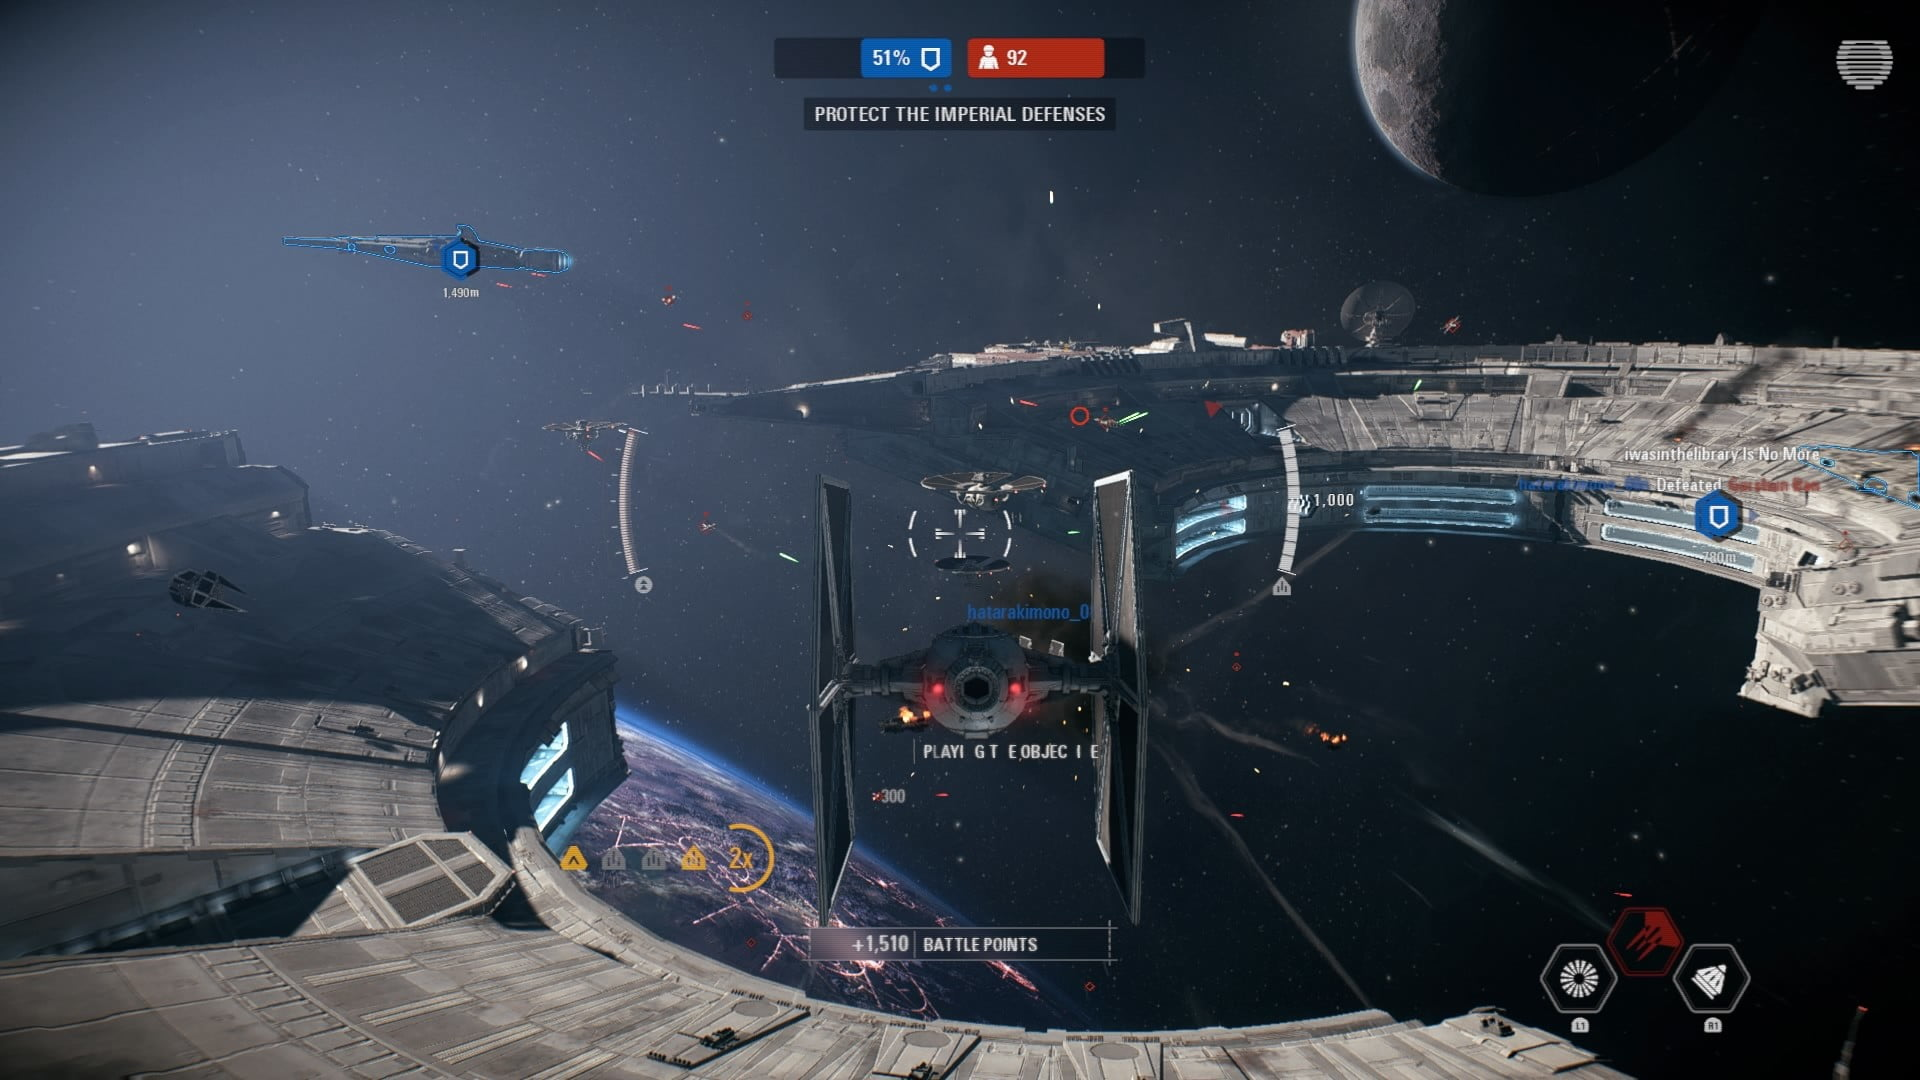 Battlefront-2 Tie-fighter